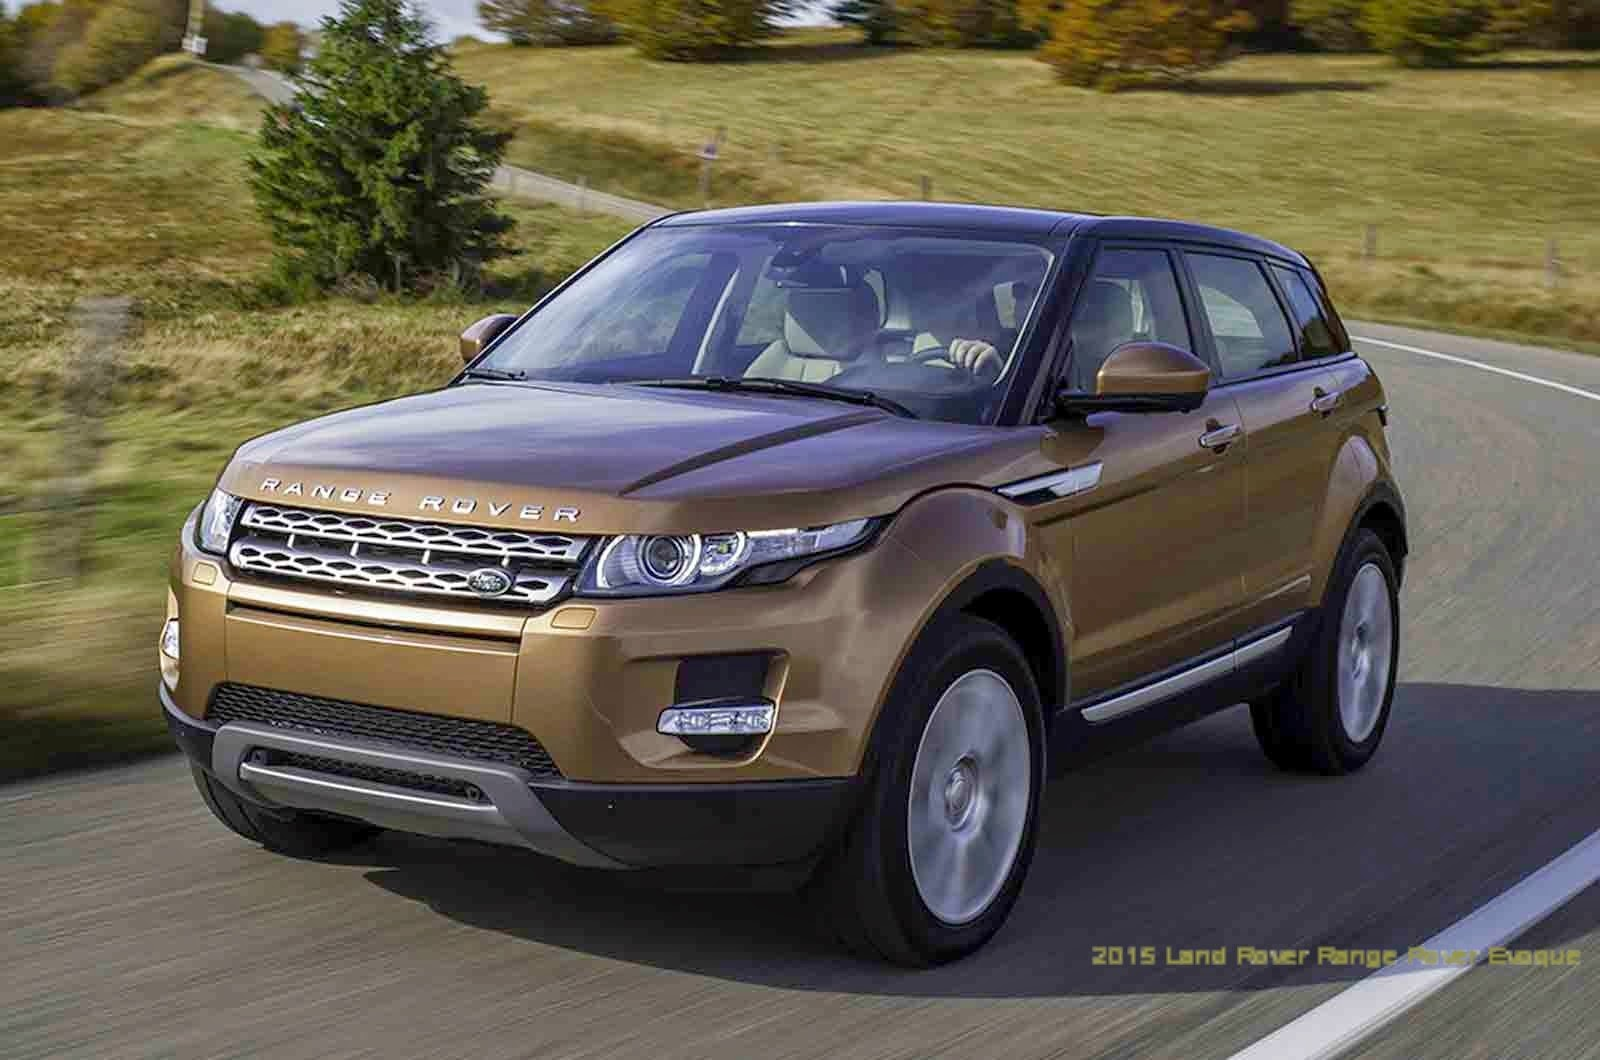 2015 land rover range rover evoque release date and reviews carmadness car reviews car. Black Bedroom Furniture Sets. Home Design Ideas